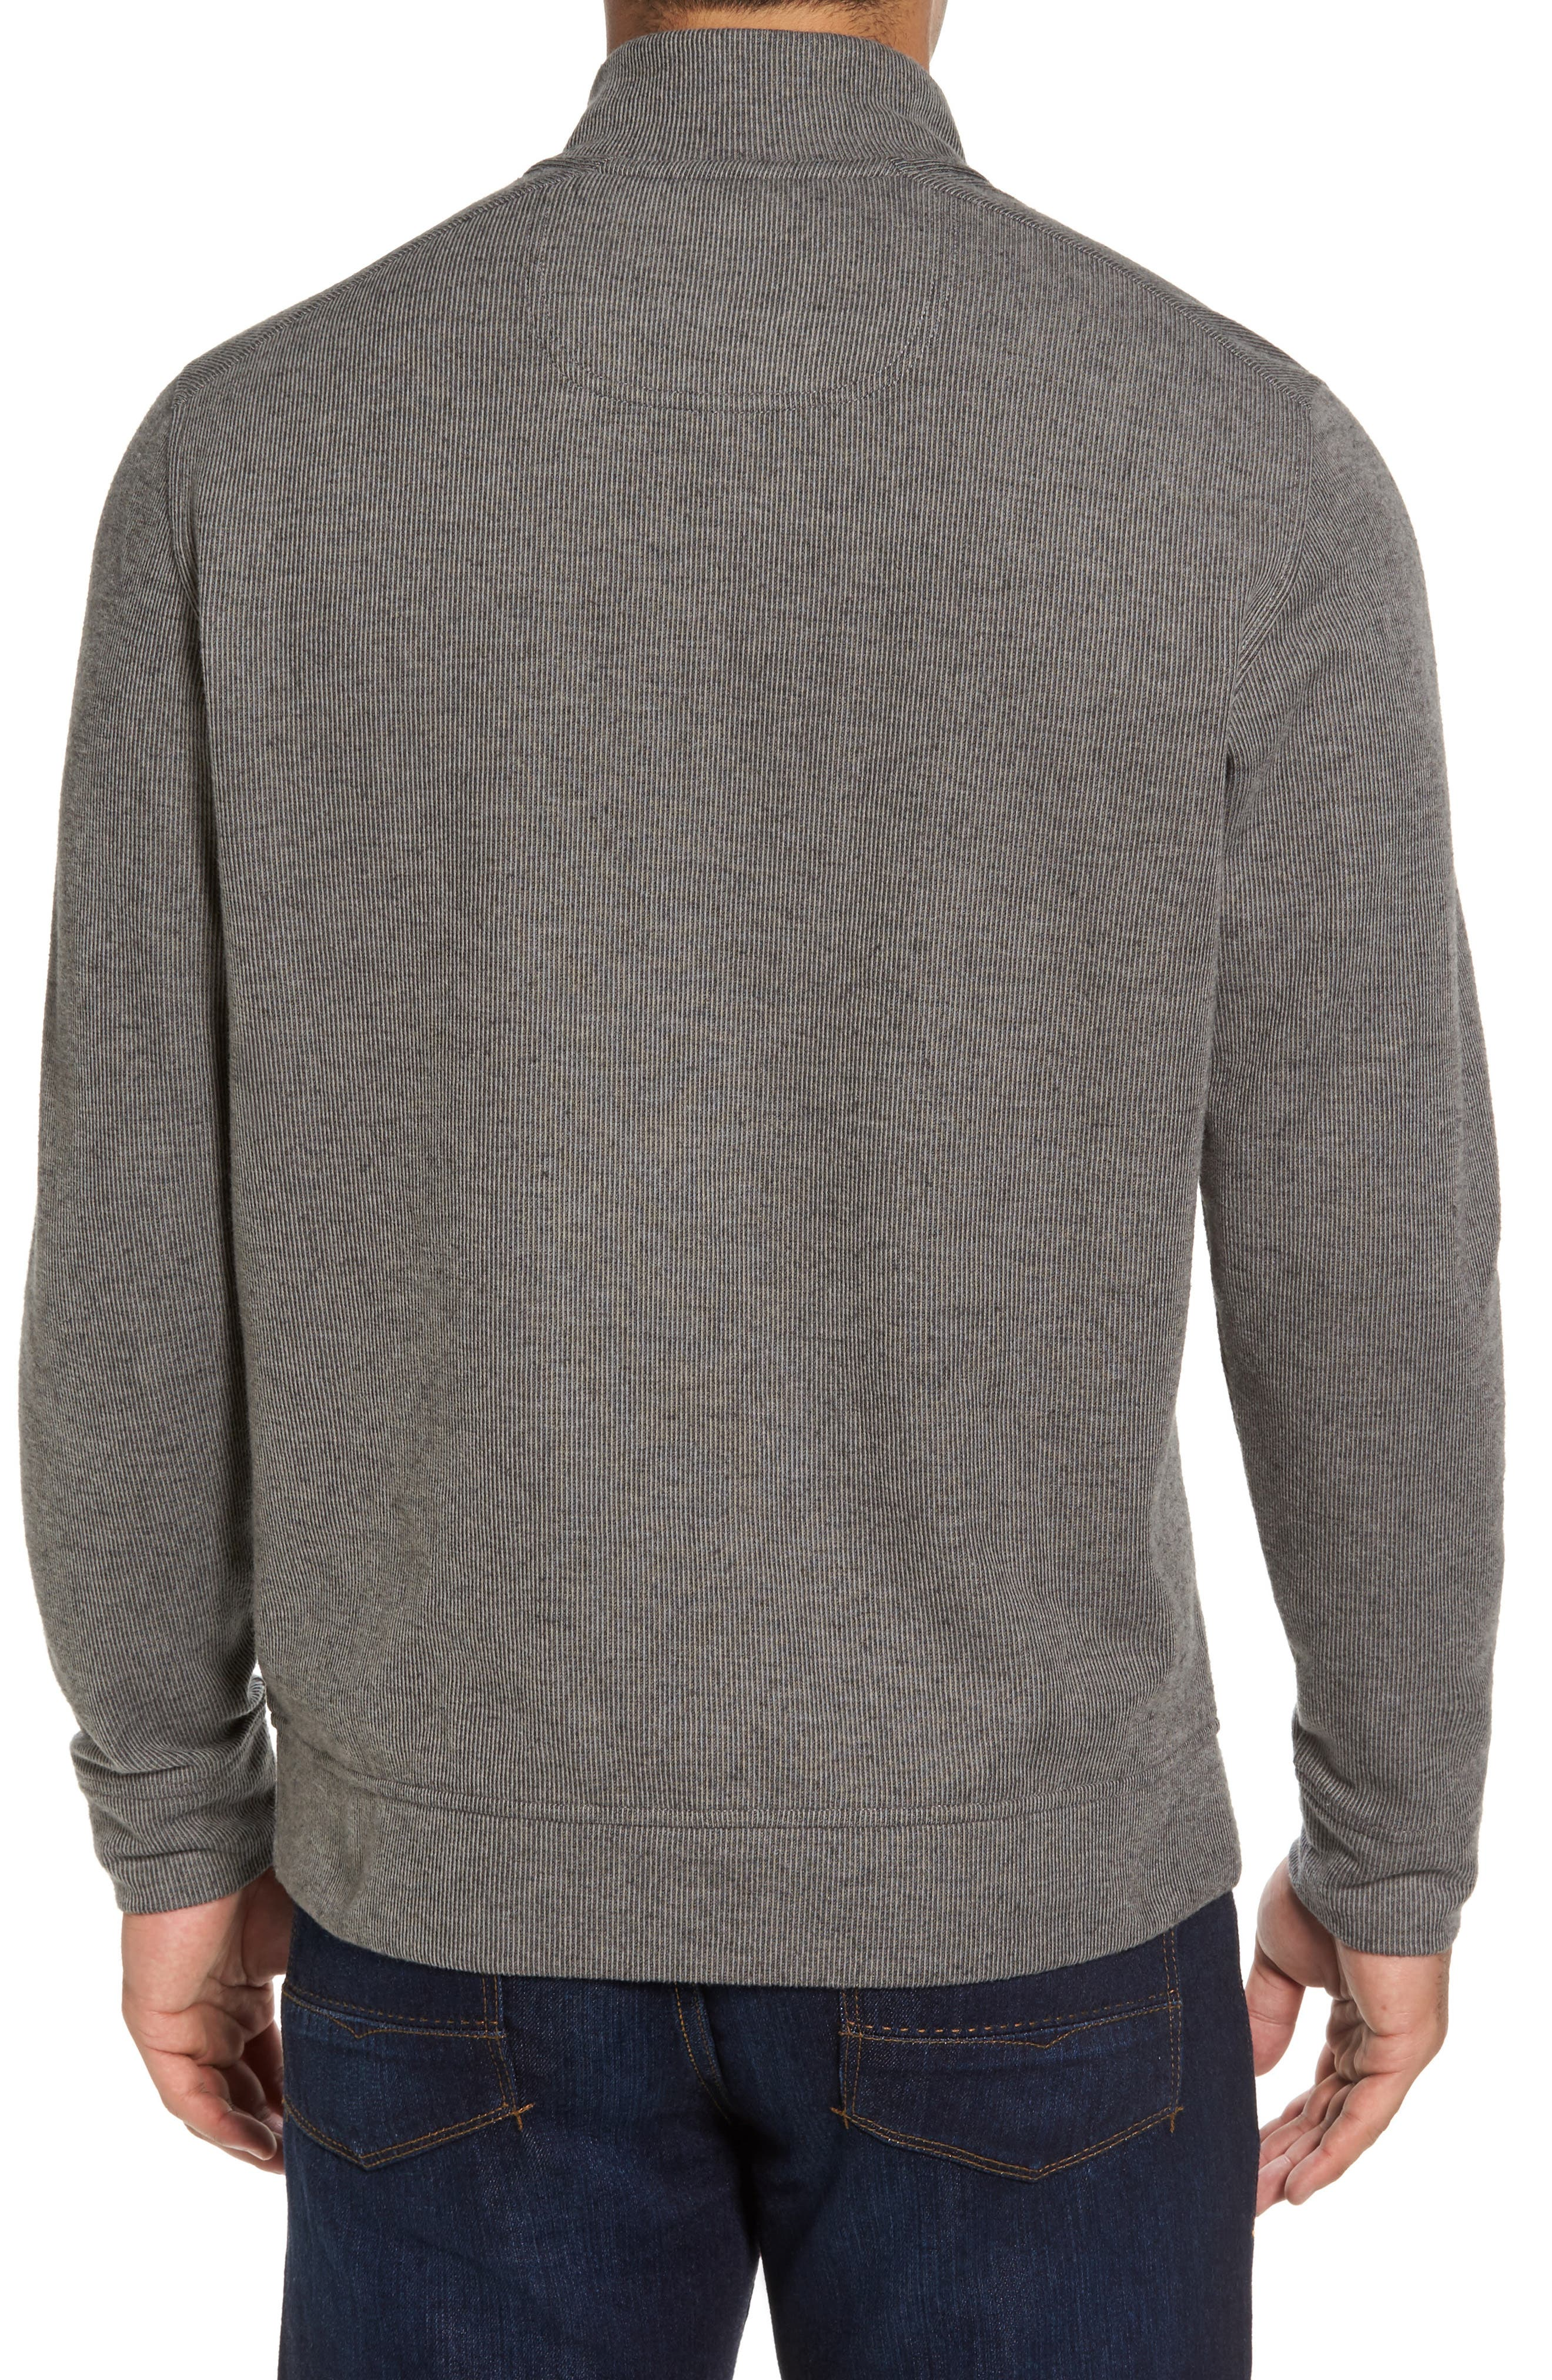 Cold Springs Snap Mock Neck Sweater,                             Alternate thumbnail 2, color,                             001